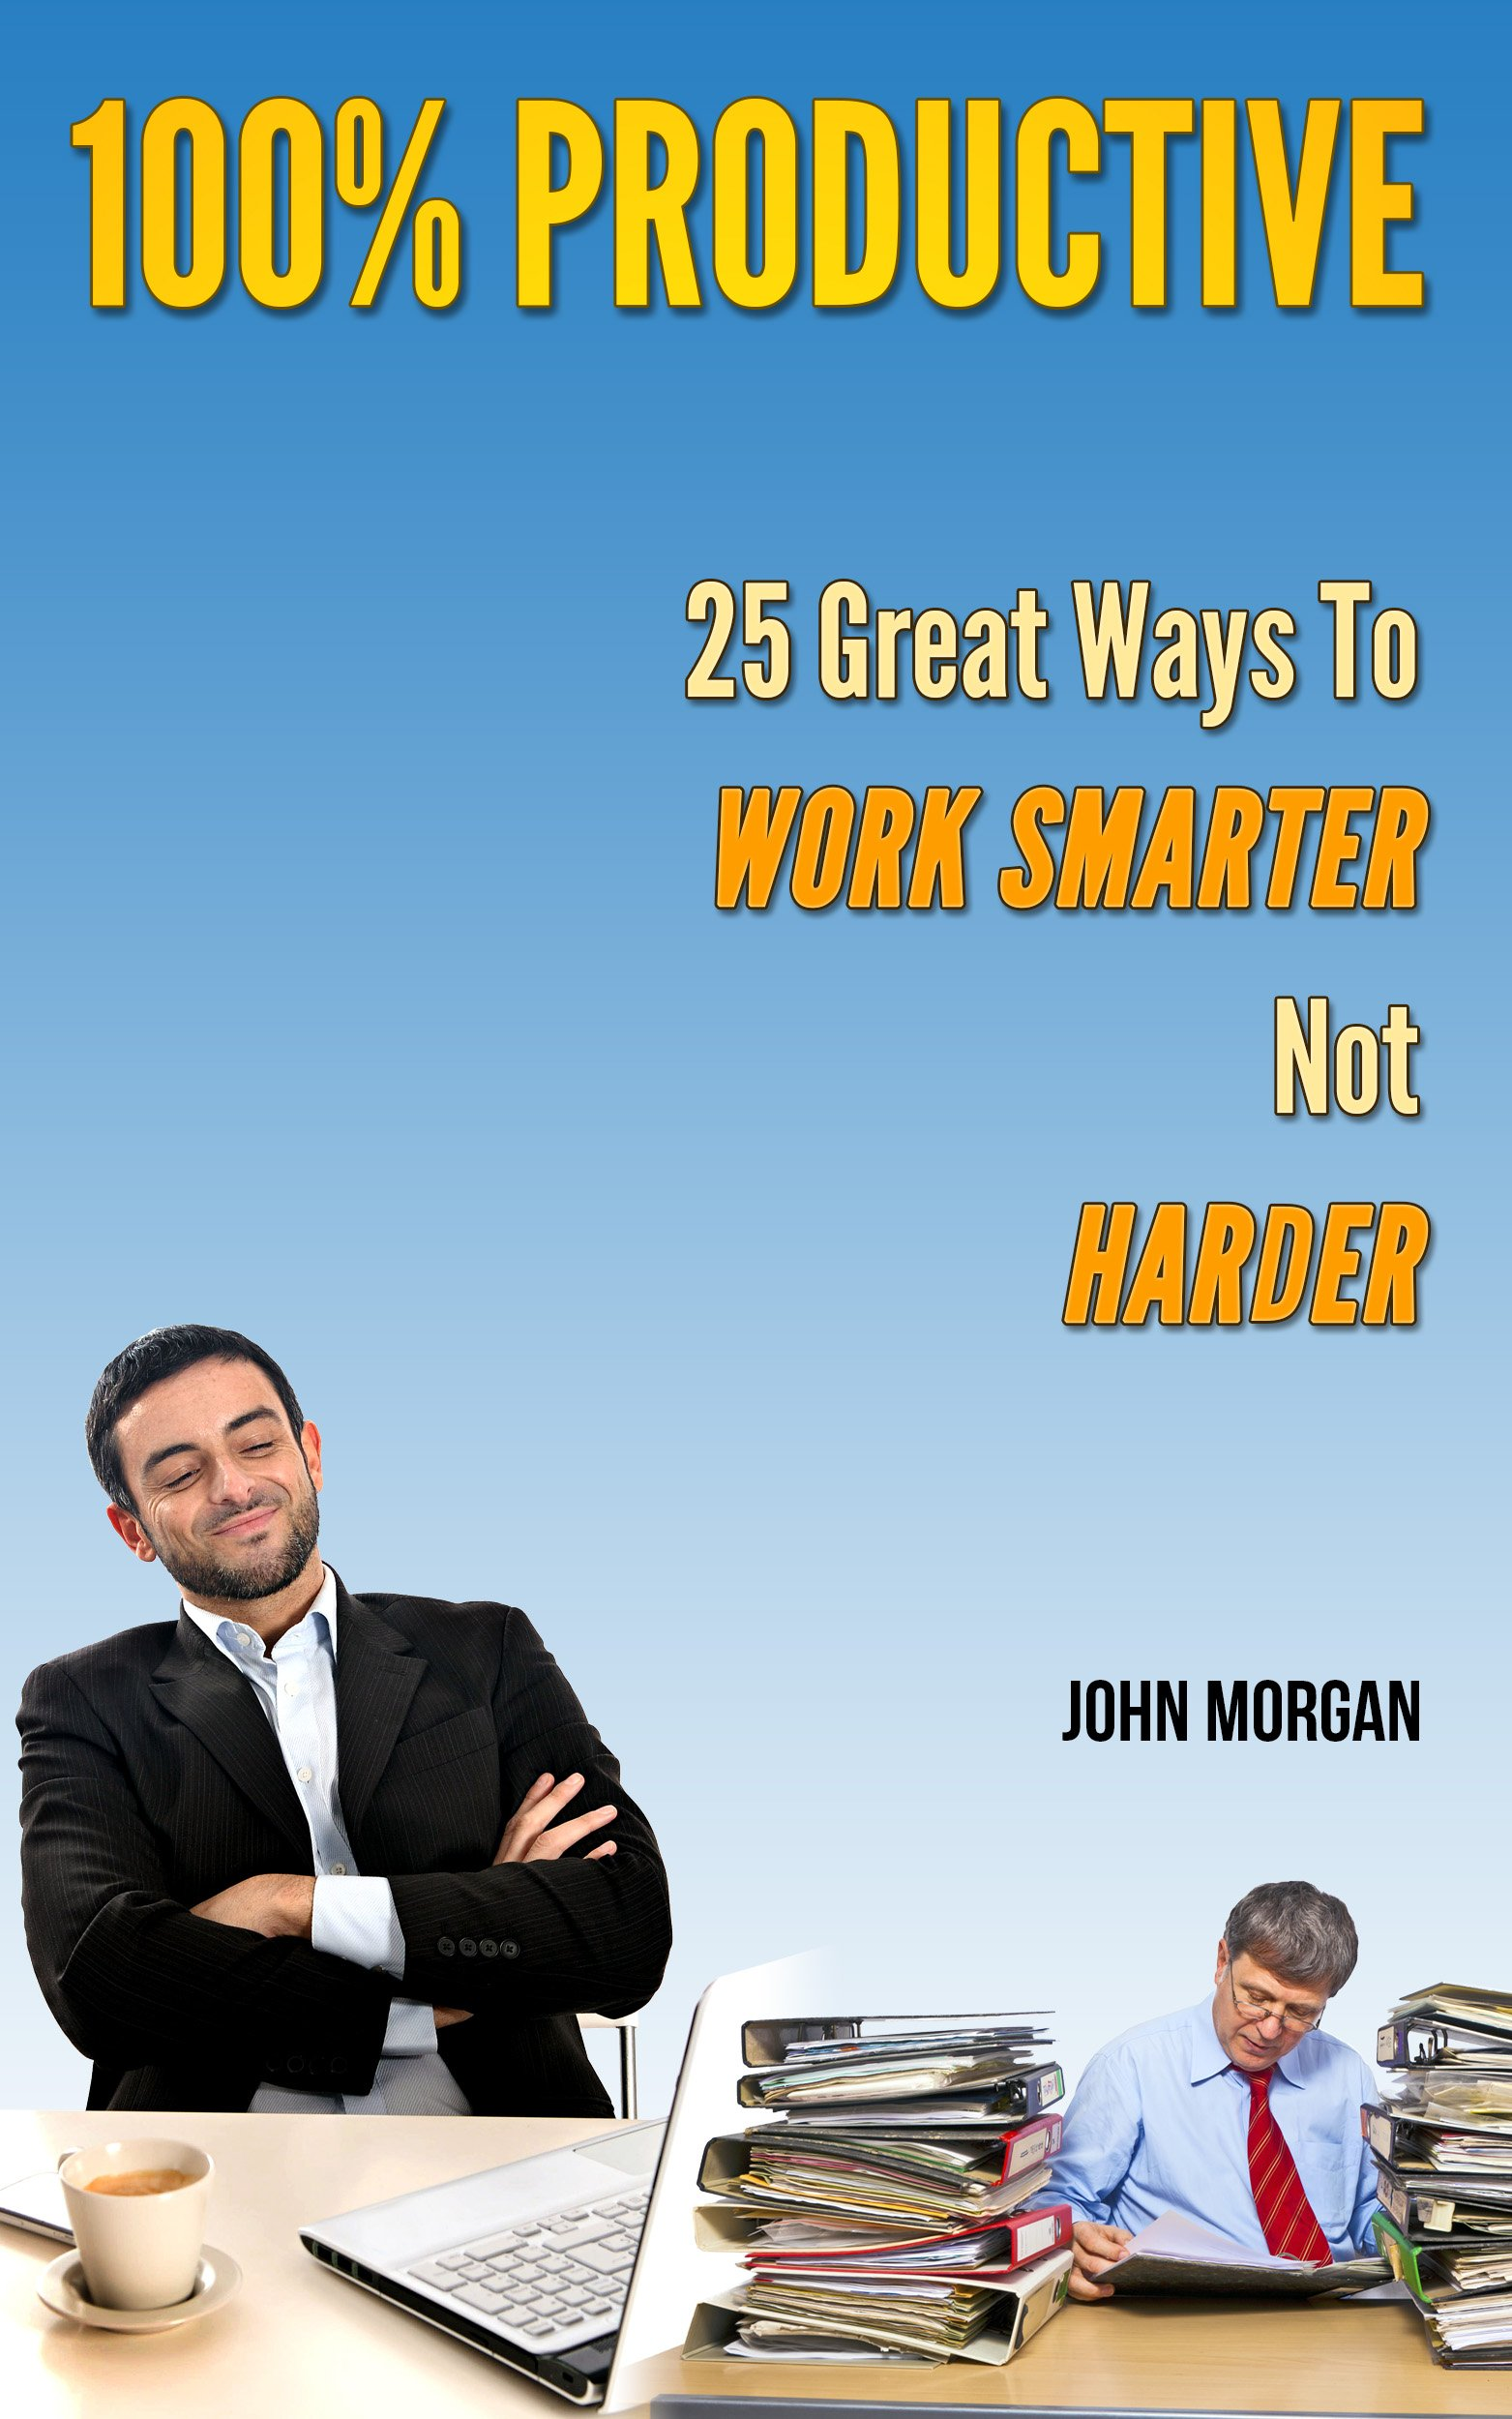 100% Productive: 25 Great Ways To Work Smarter Not Harder (How To Be 100% Book 2)